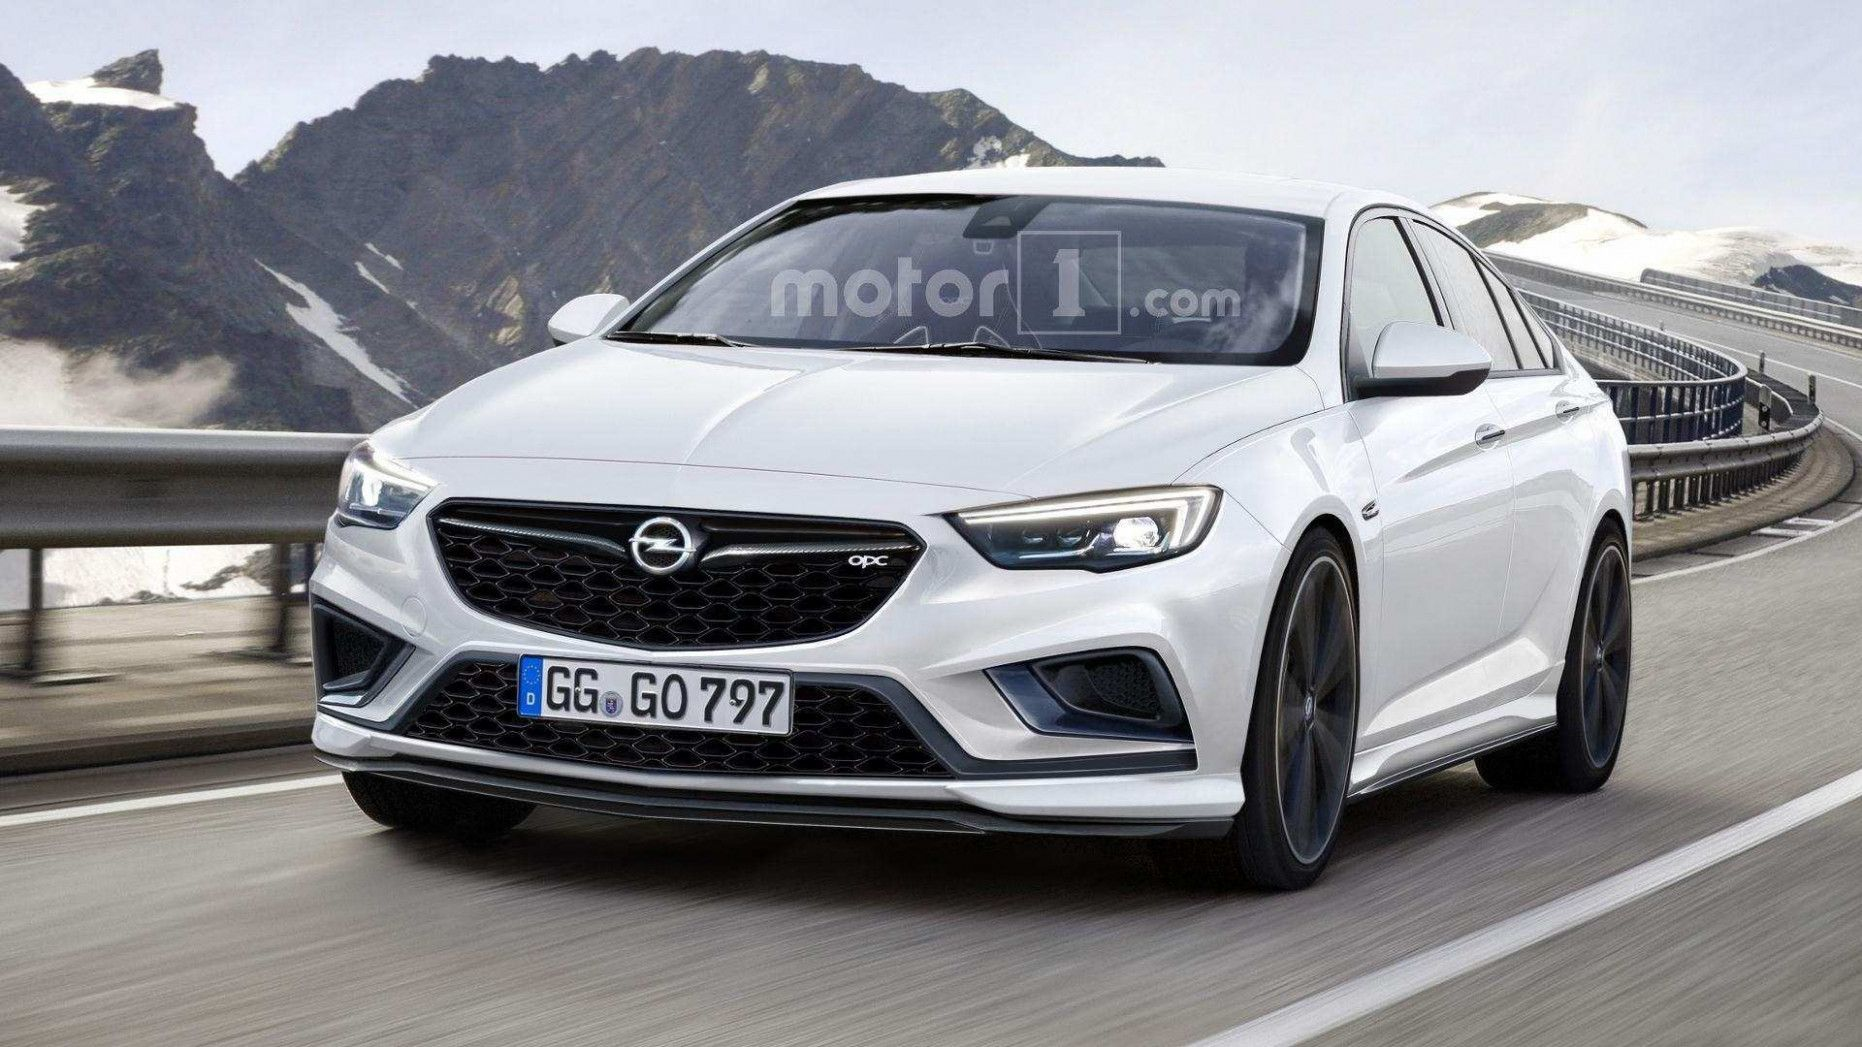 Coming In 2020 Opel S Product Offensive For The New Year Wheels24